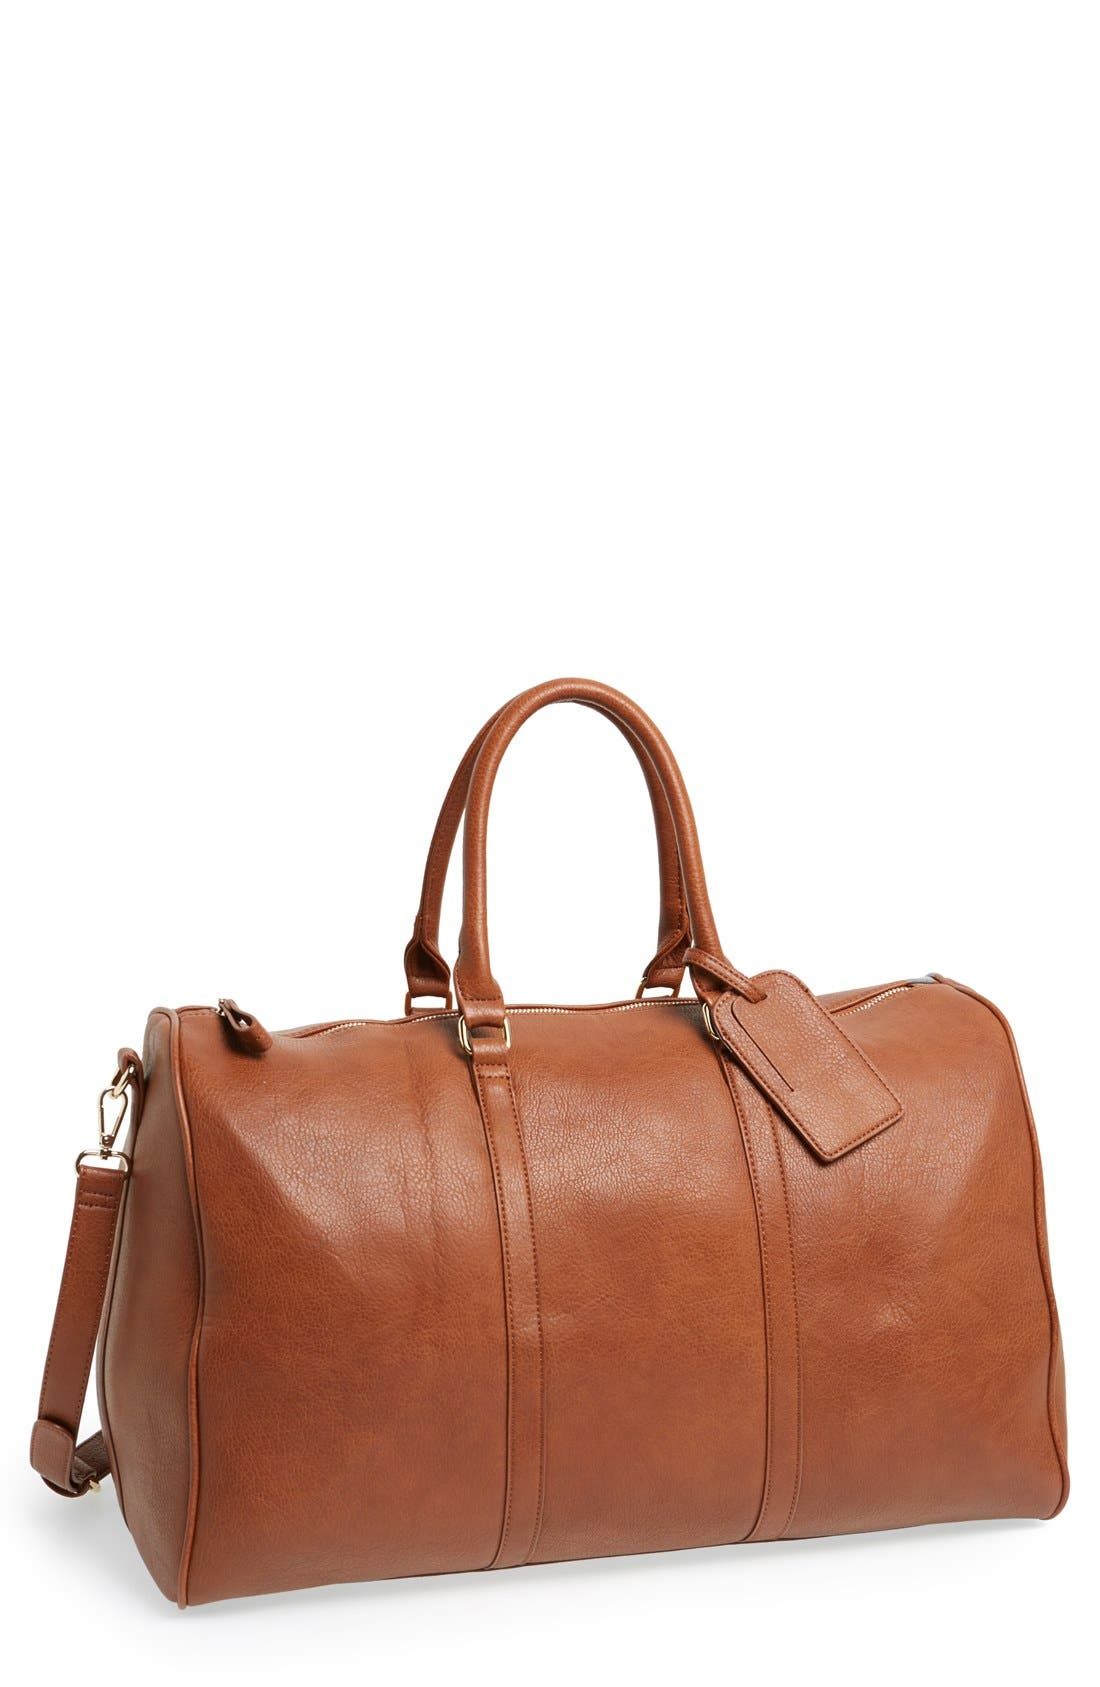 Women's Duffel Bags & Weekend Bags | Nordstrom